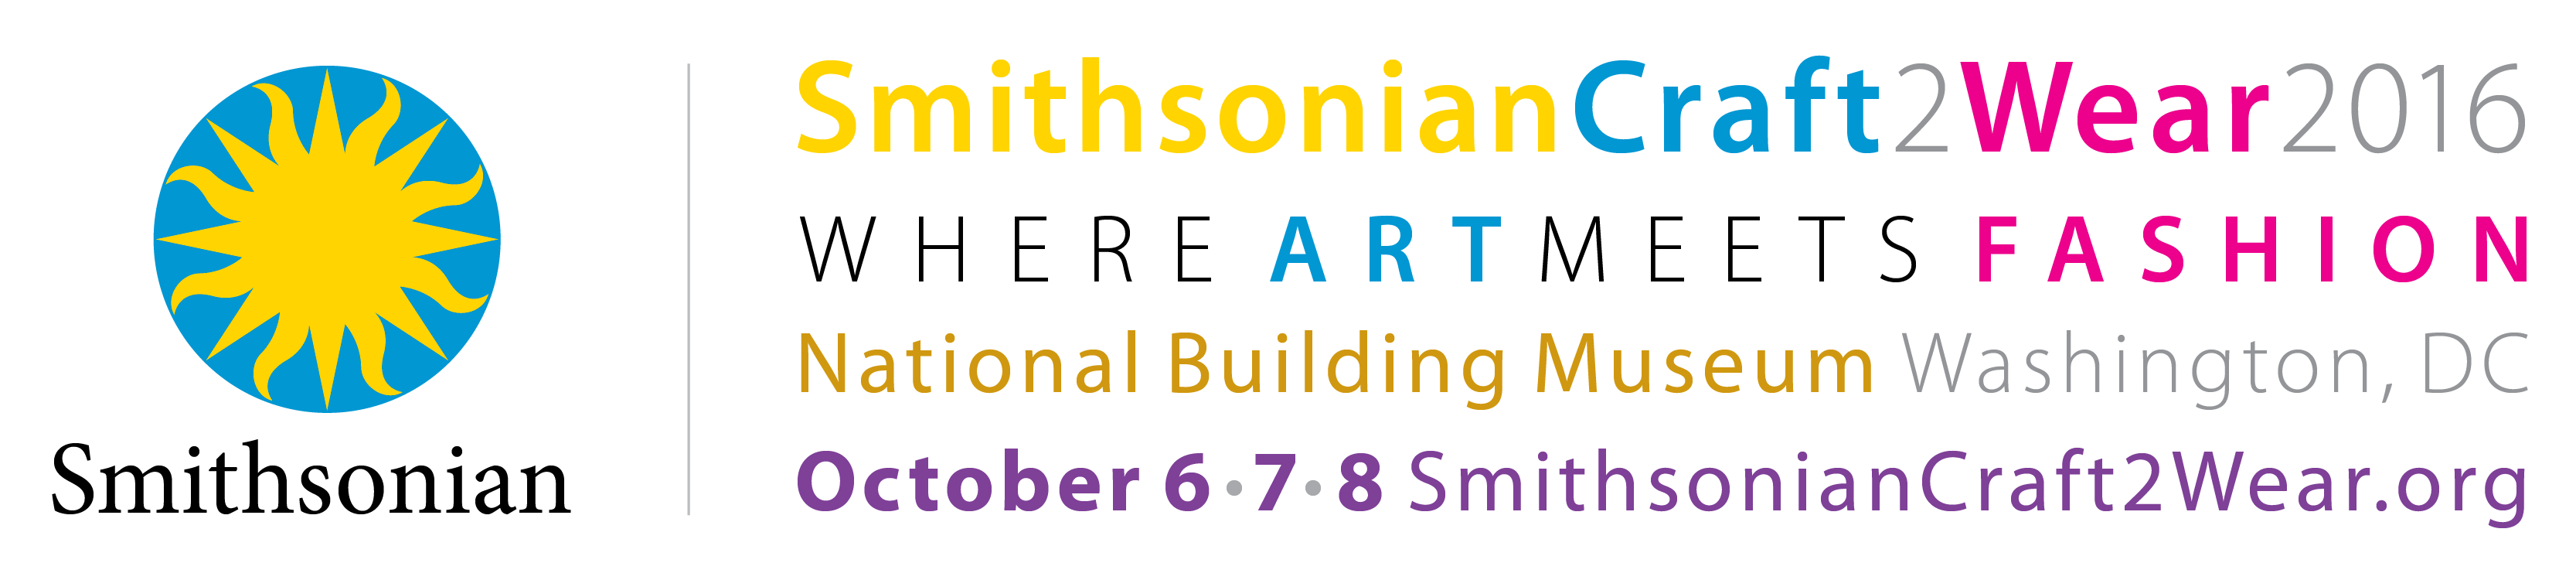 smithsonian-craft2wear-2016